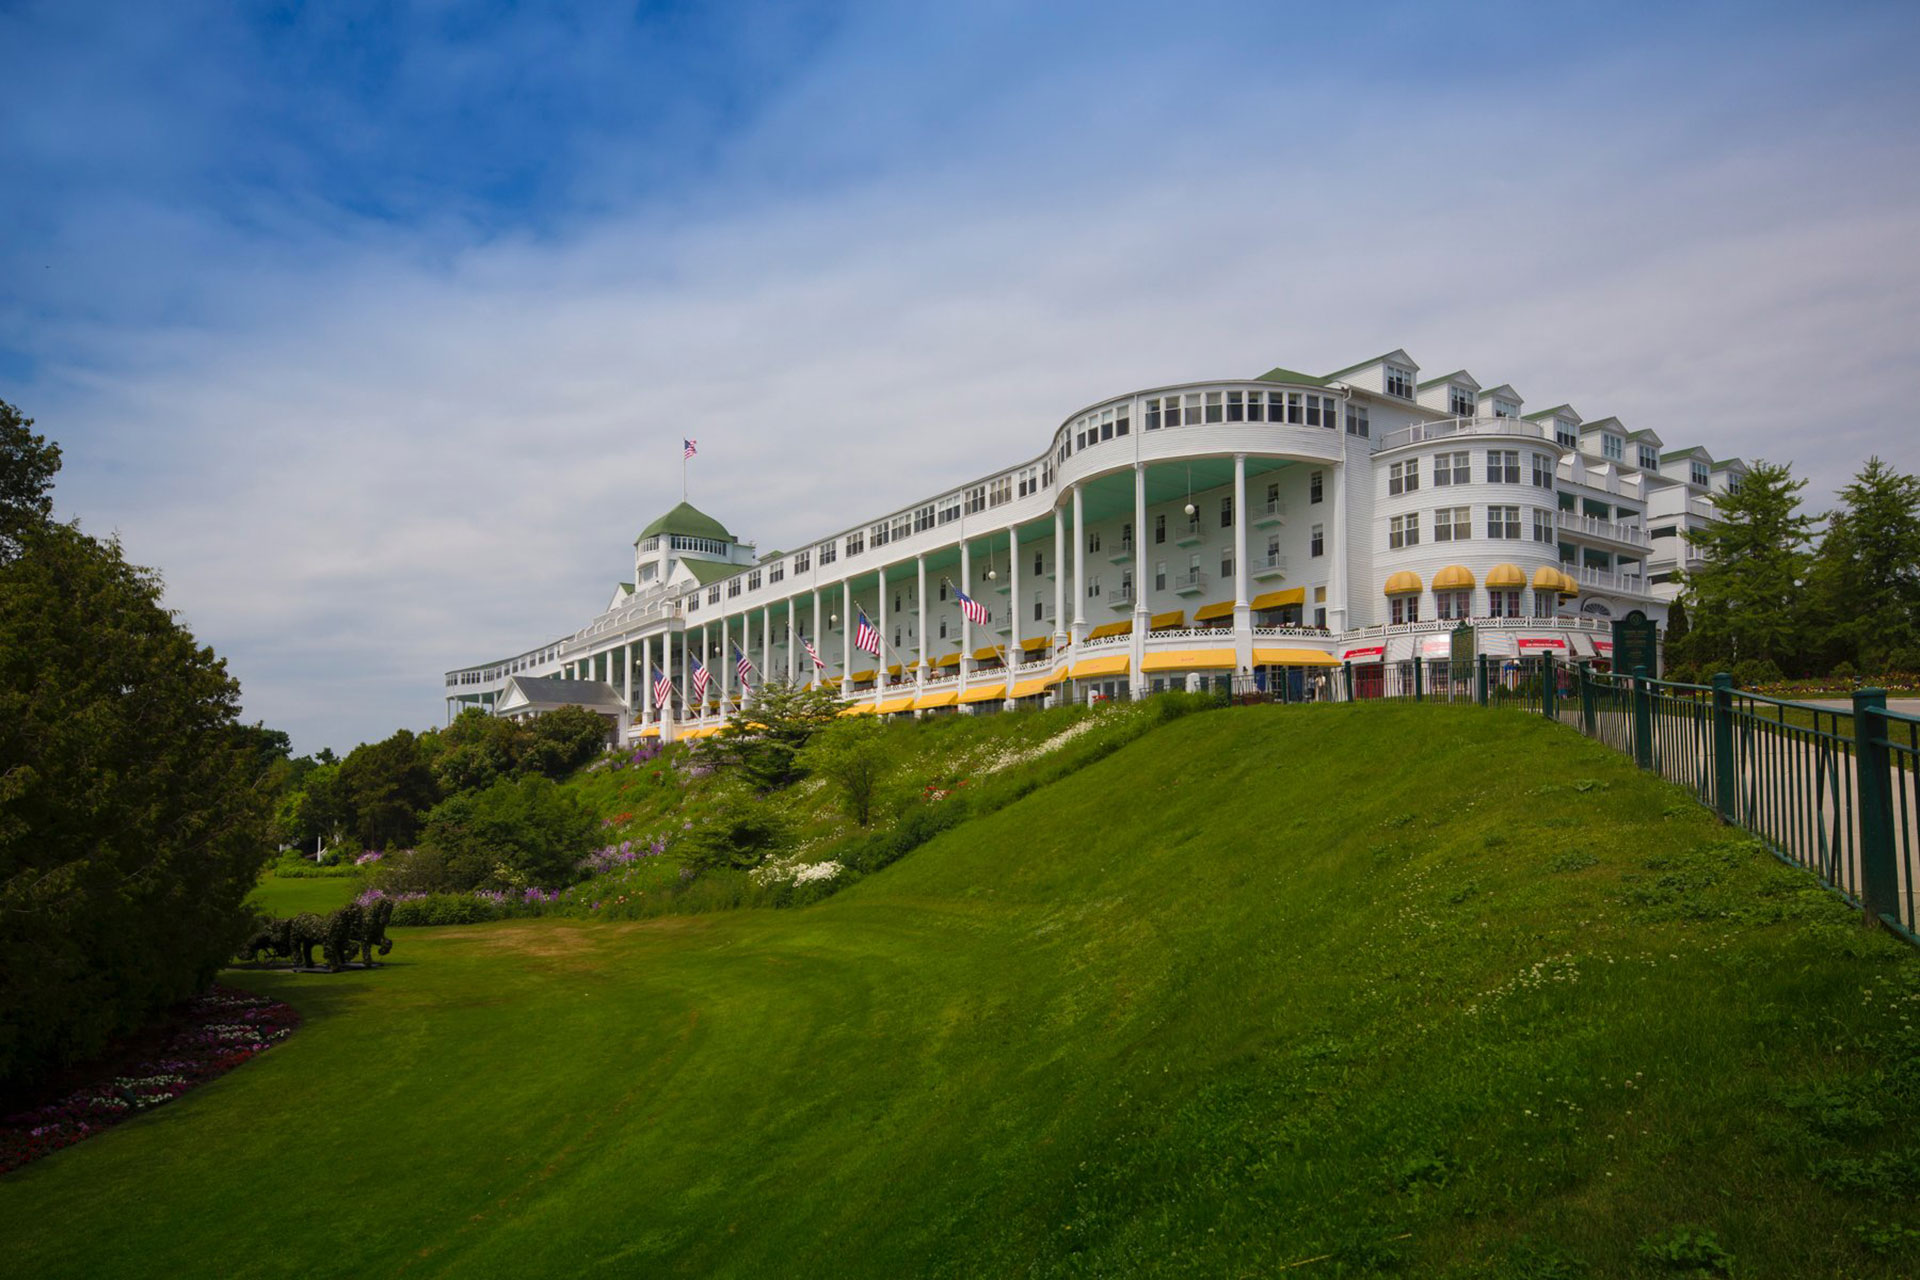 The Grand Hotel on Mackinac Island; Courtesy of The Grand Hotel